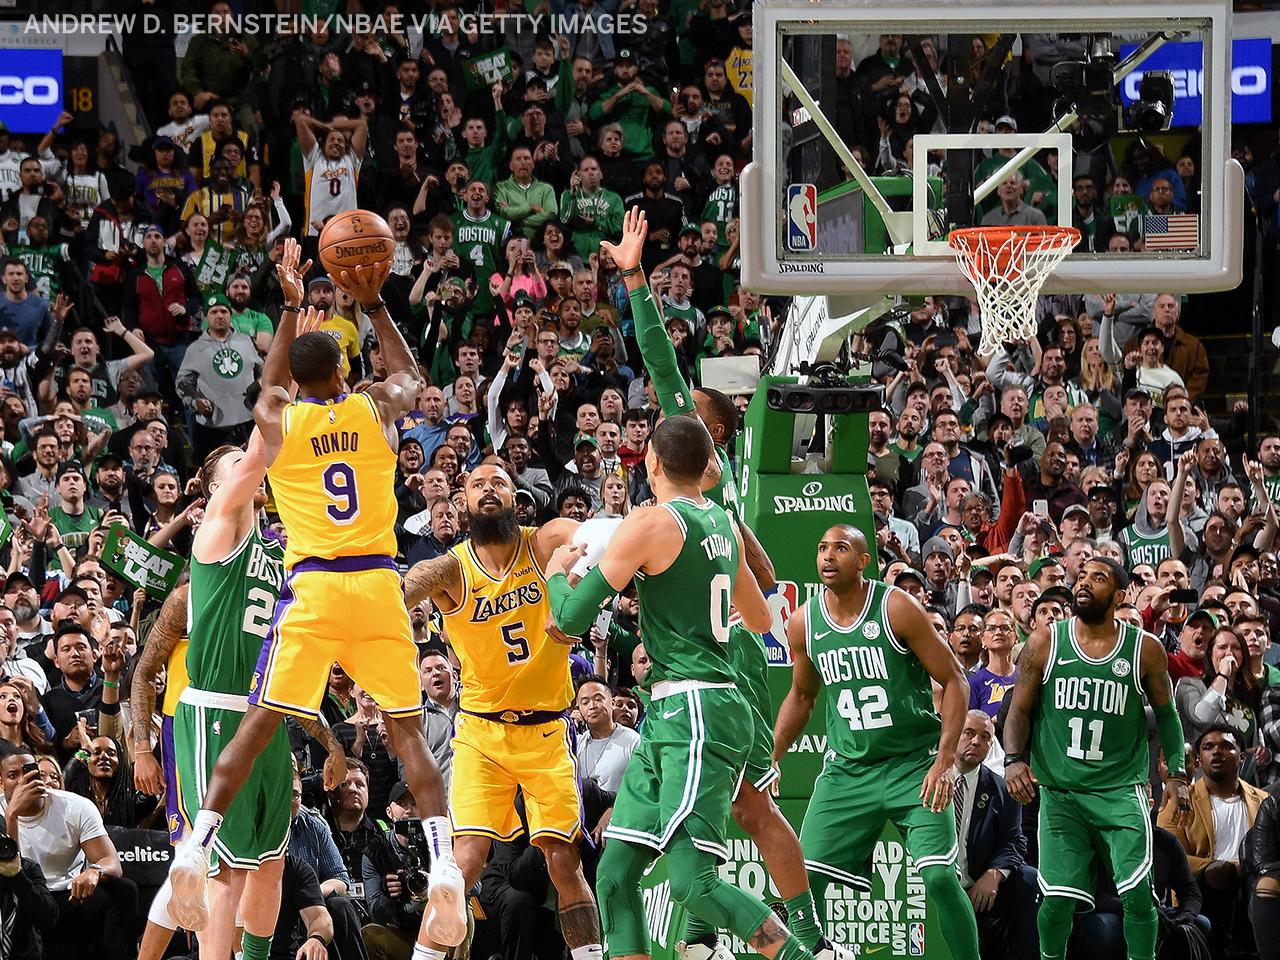 RONDO CALLED GAME IN BOSTON �� https://t.co/nTwY3dG2kH